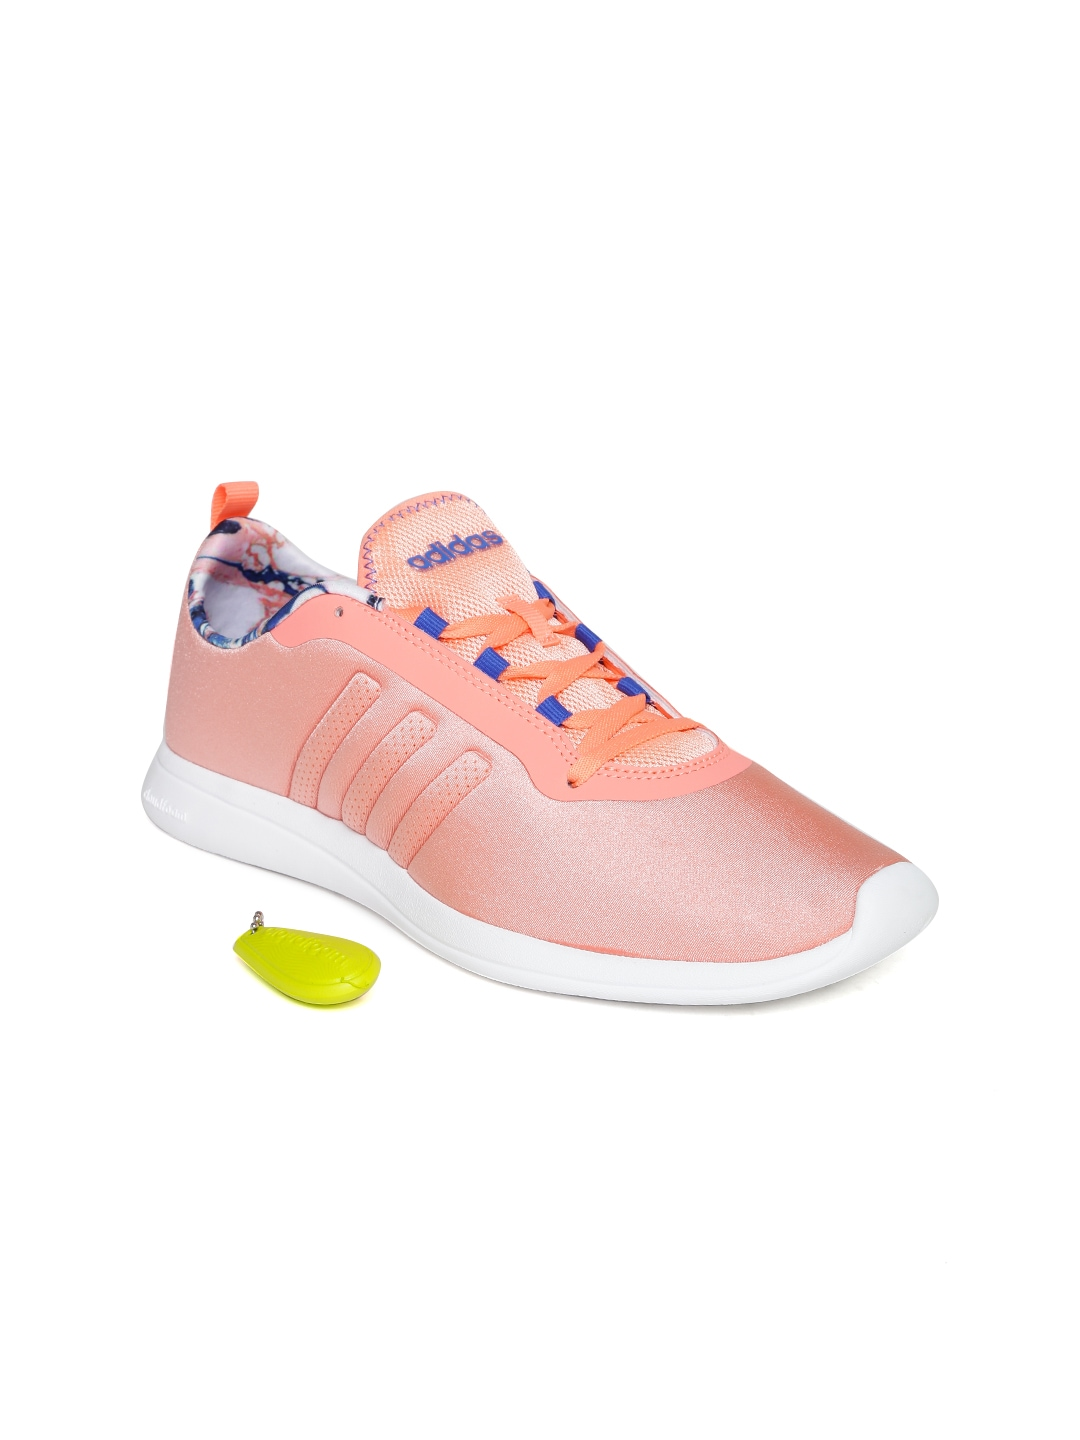 Adidas Neo Cloudfoam Pure W Sneakers